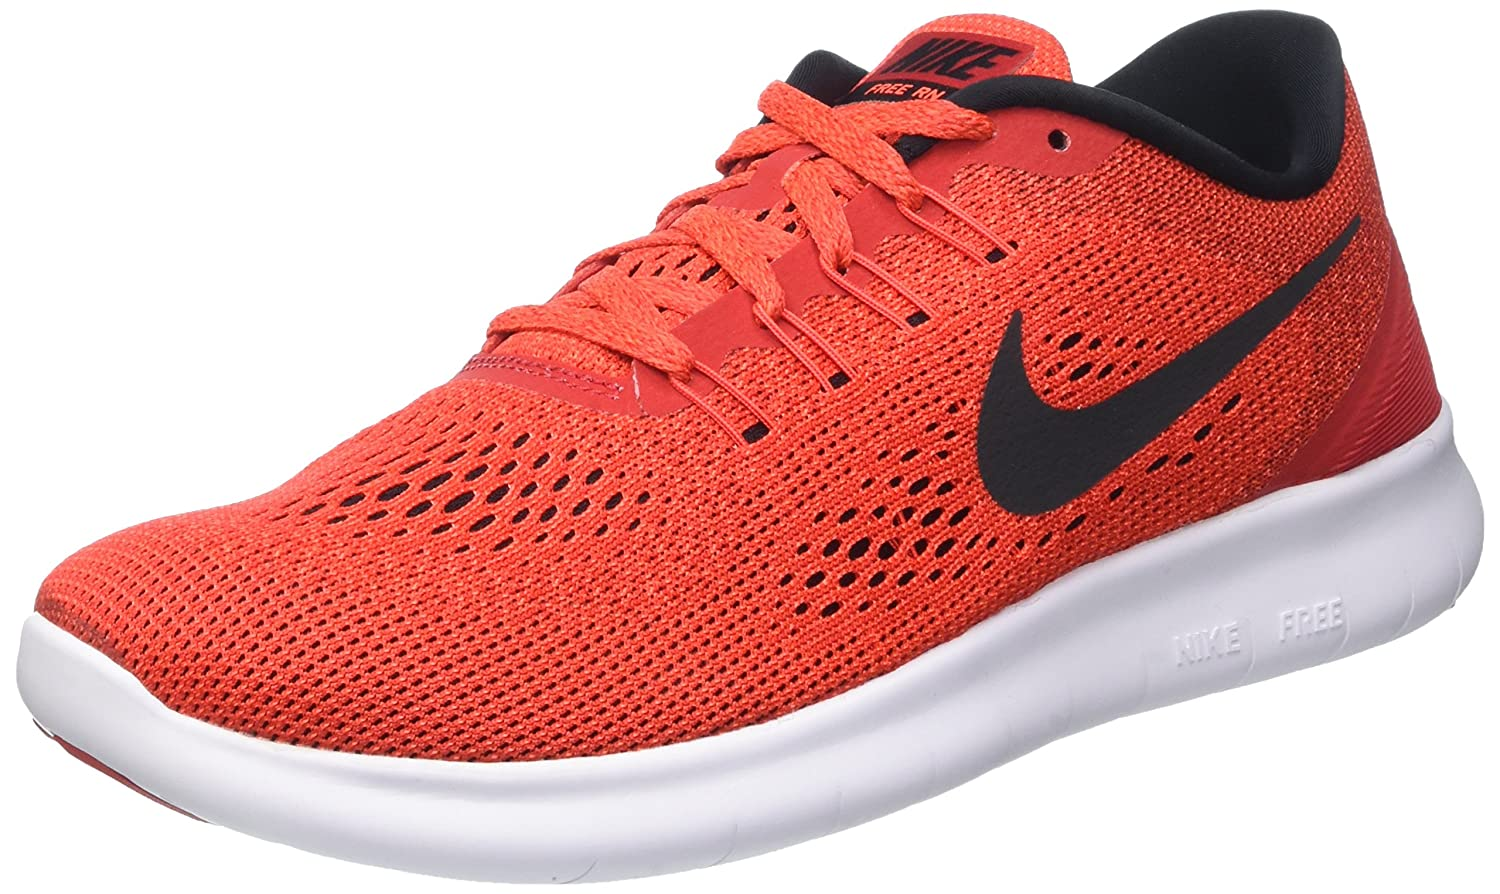 NIKE Men's Free RN Running Shoe B01CEJ54PA Red/White 11 M US|Total Crimson/Black/Gym Red/White B01CEJ54PA b26f68